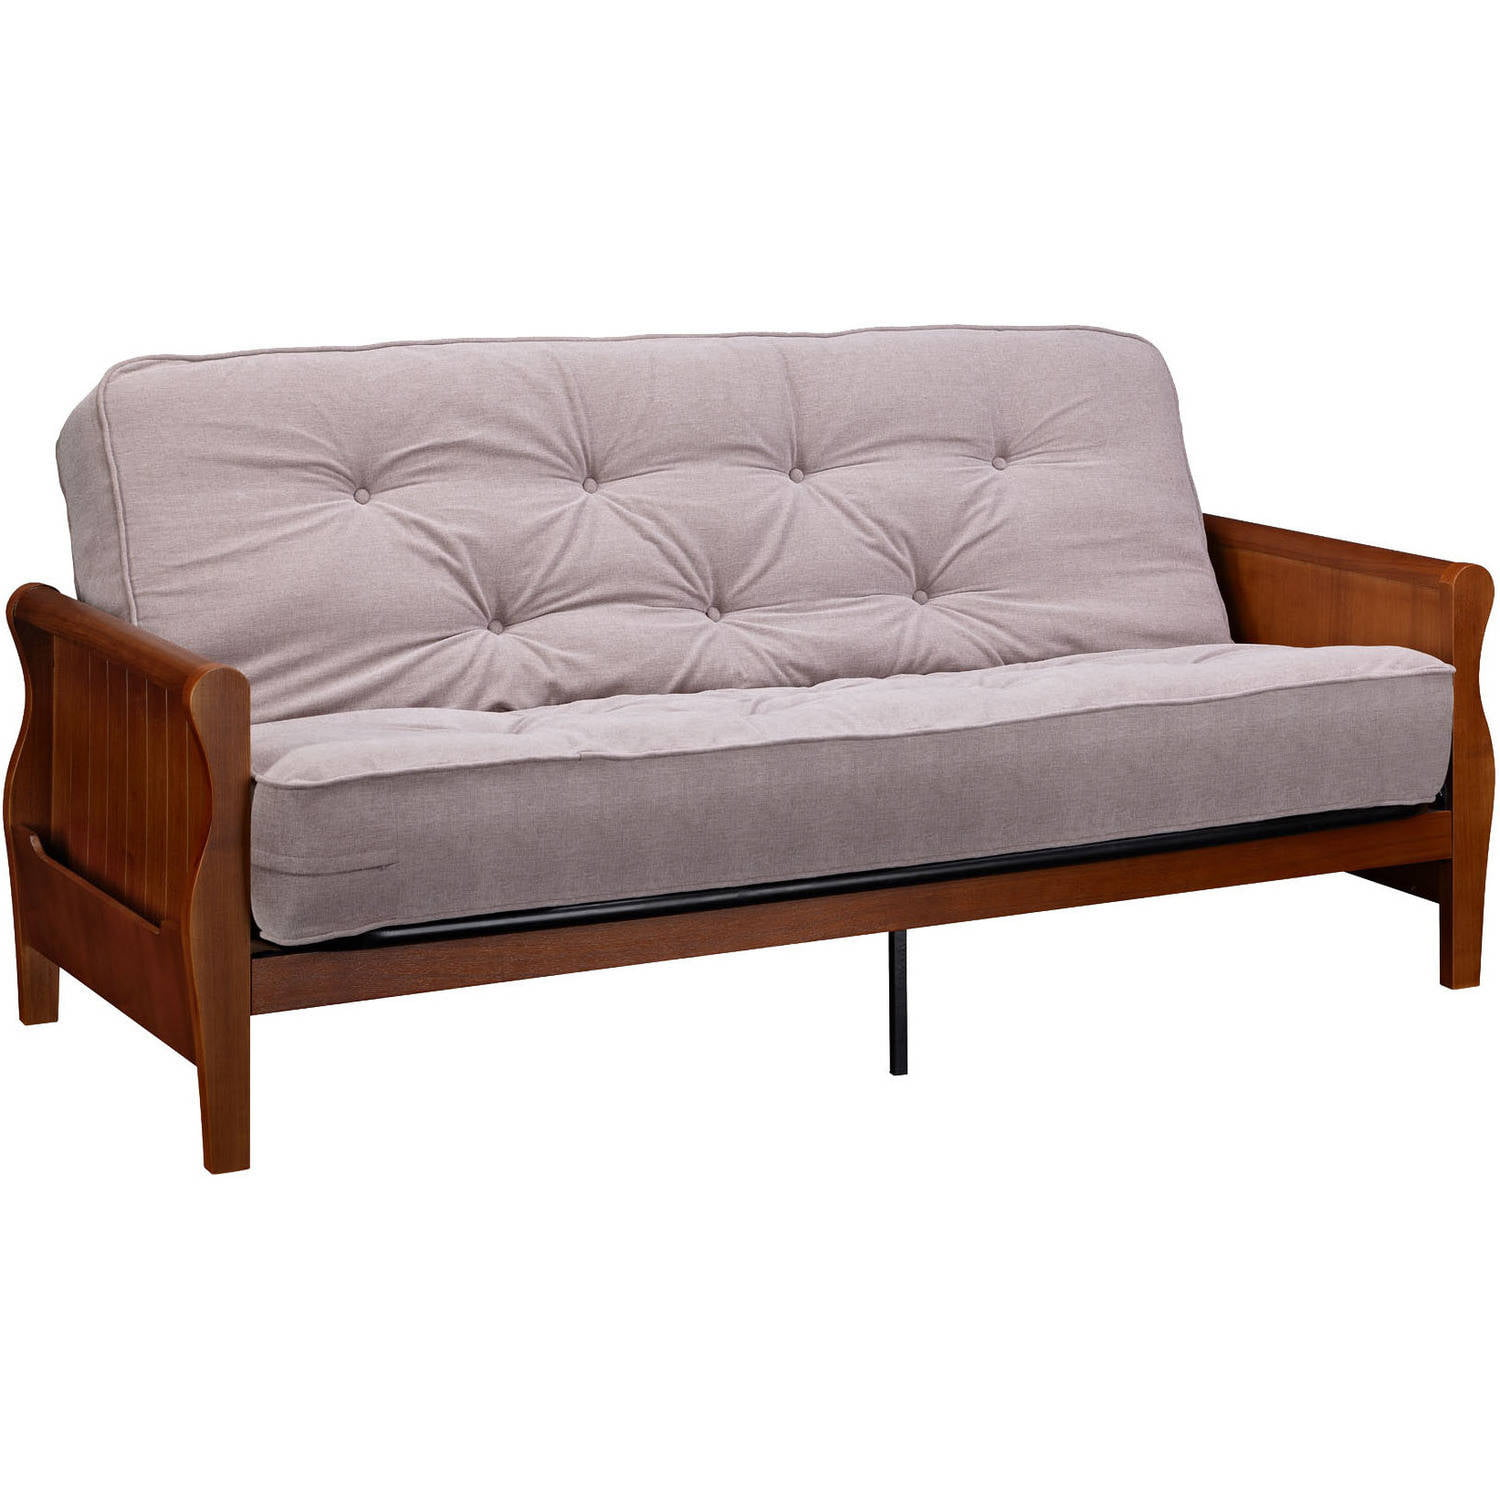 Better Homes Gardens Wood Arm Futon With 8 Coil Mattress Multiple Colors